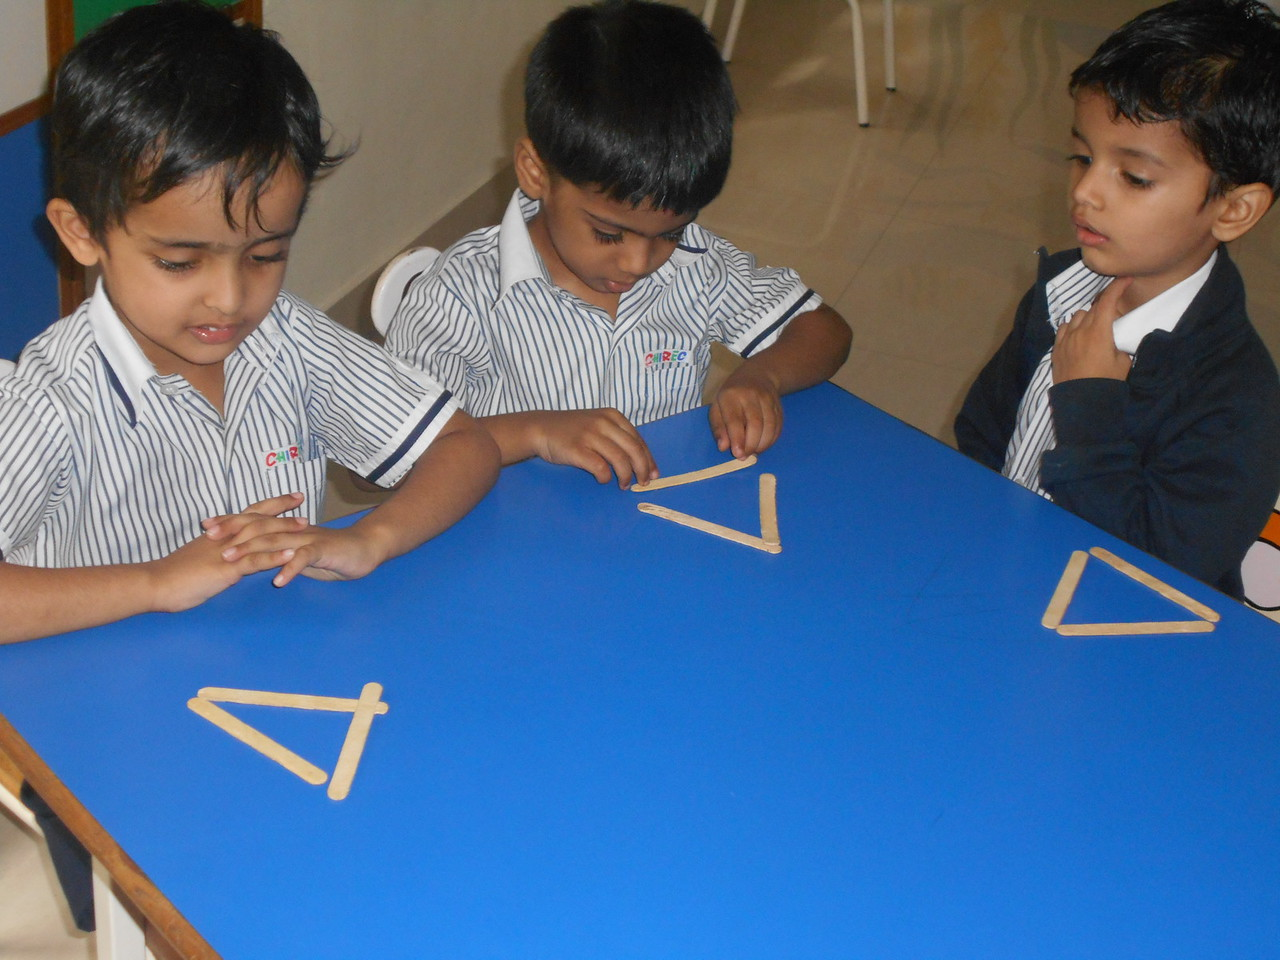 FORMING TRIANGLE WITH ICECREAM STICKS